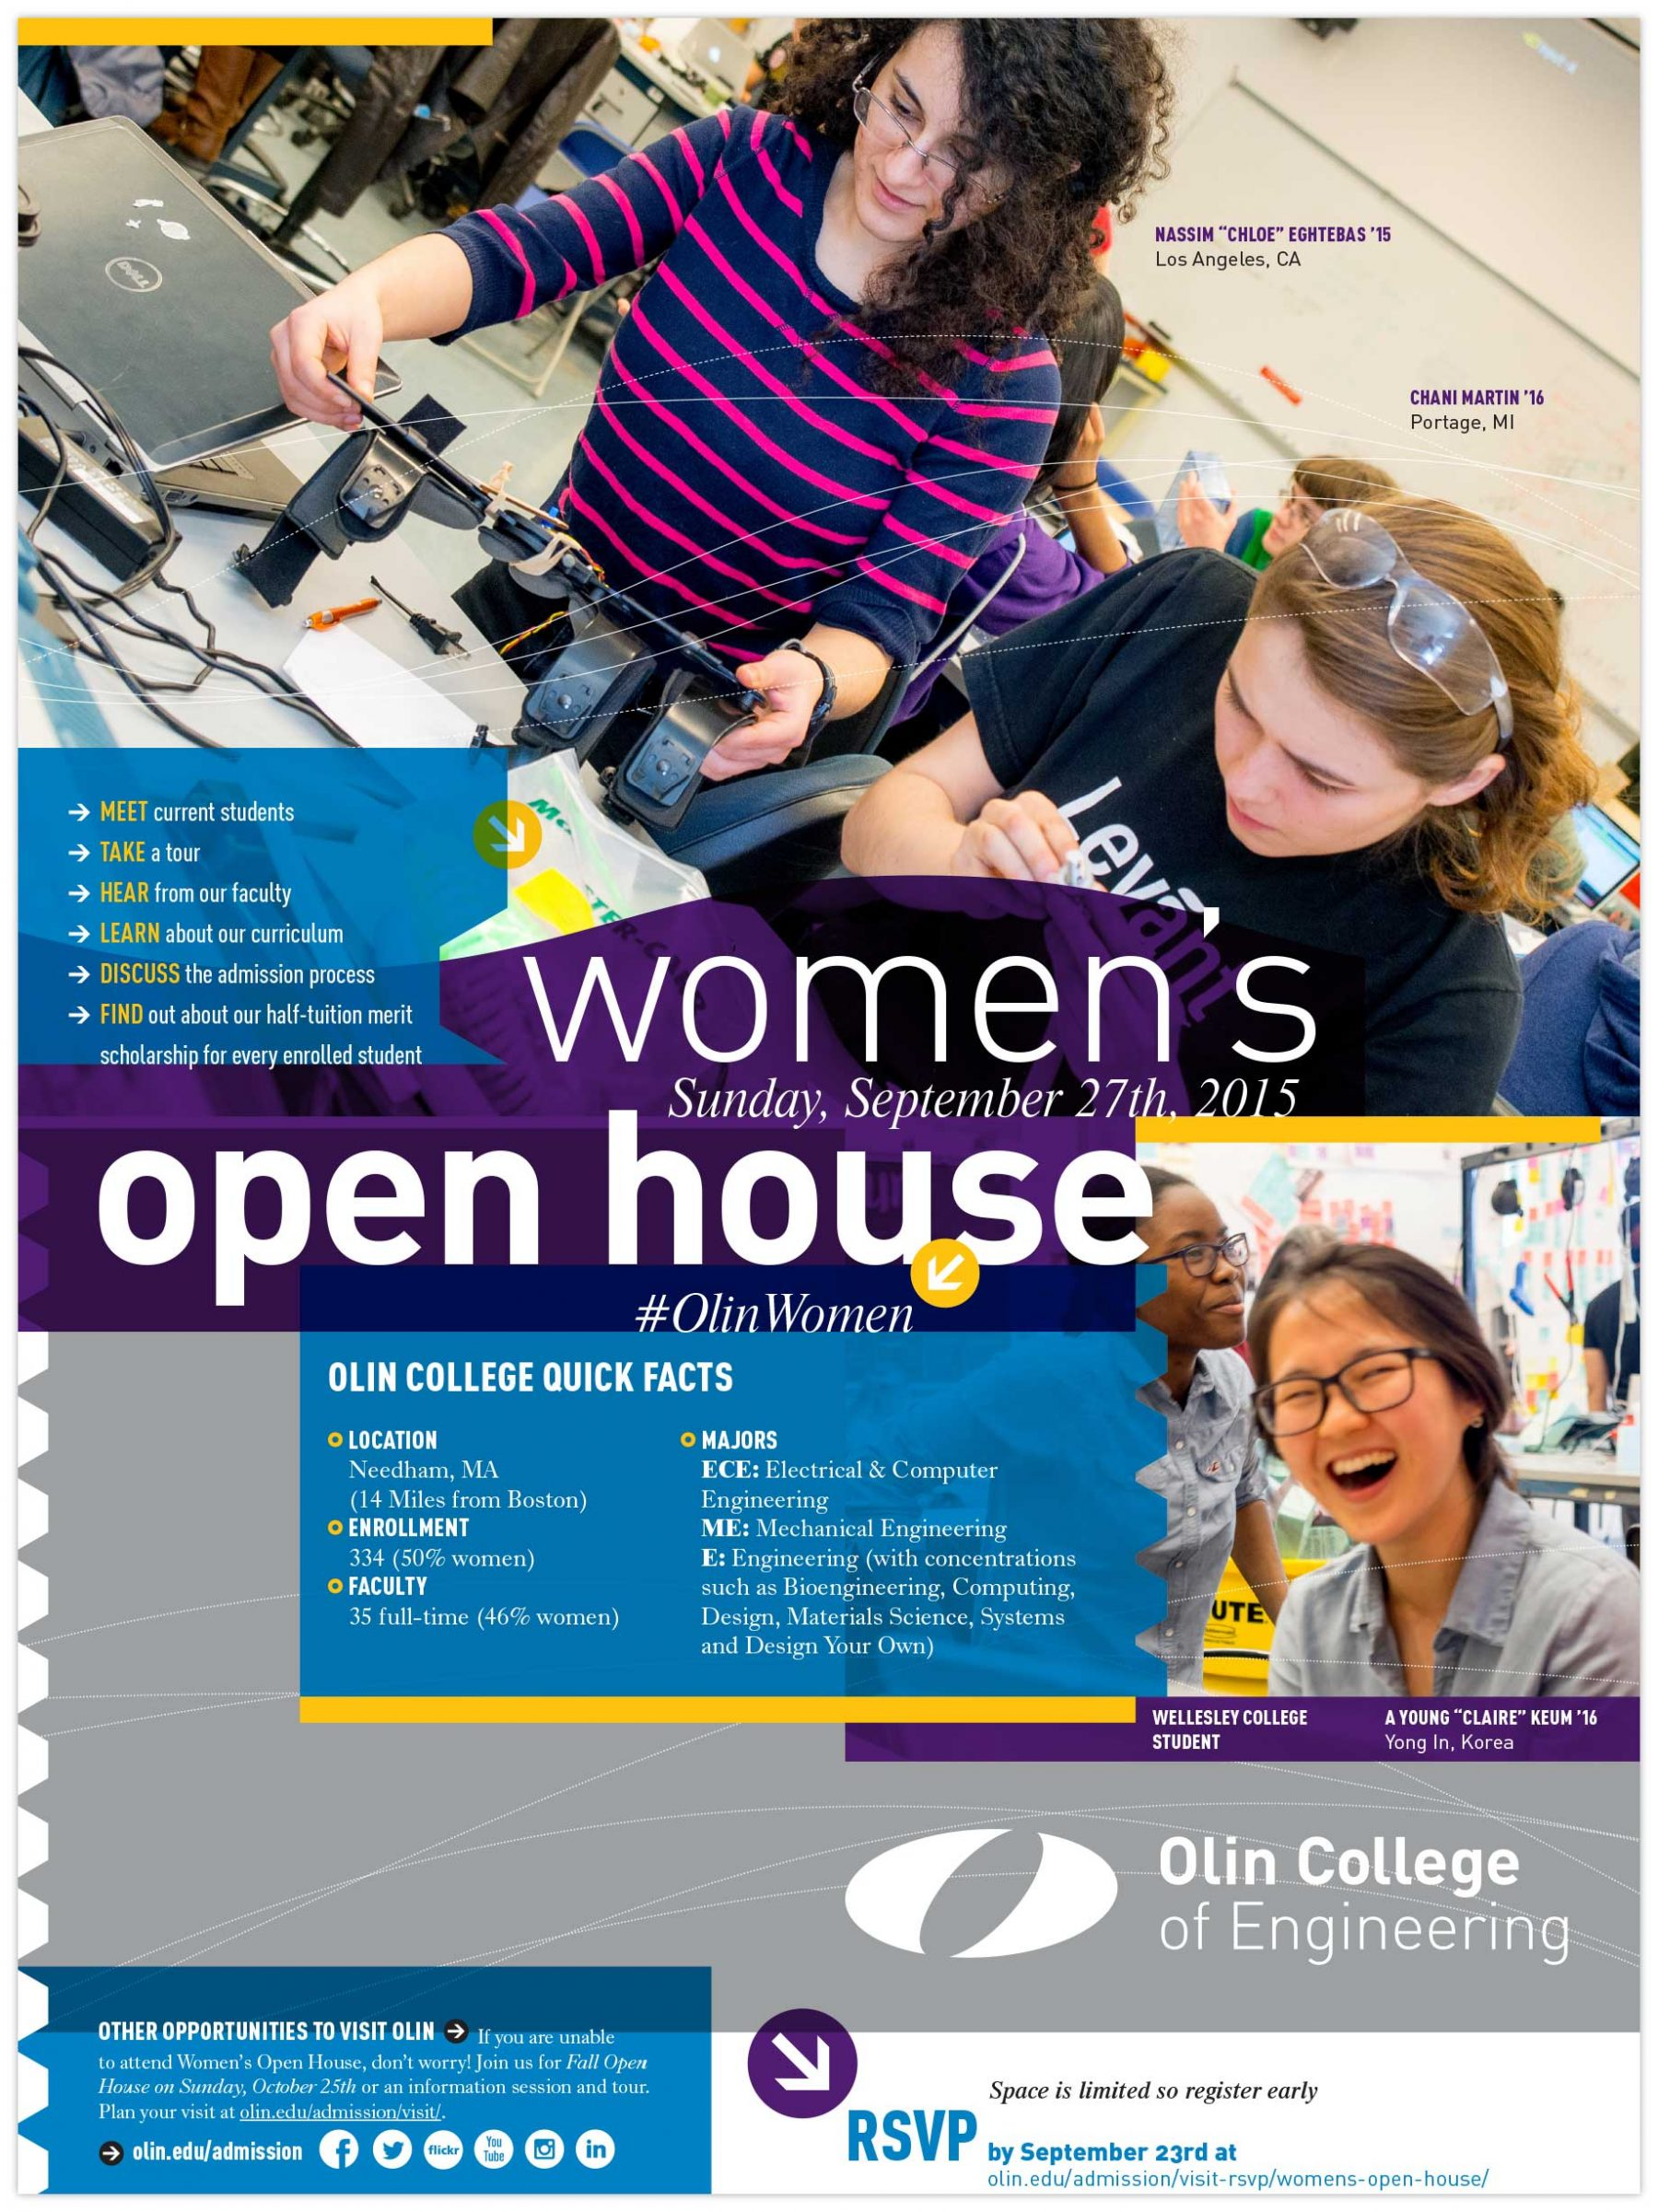 Women's Open House brochure